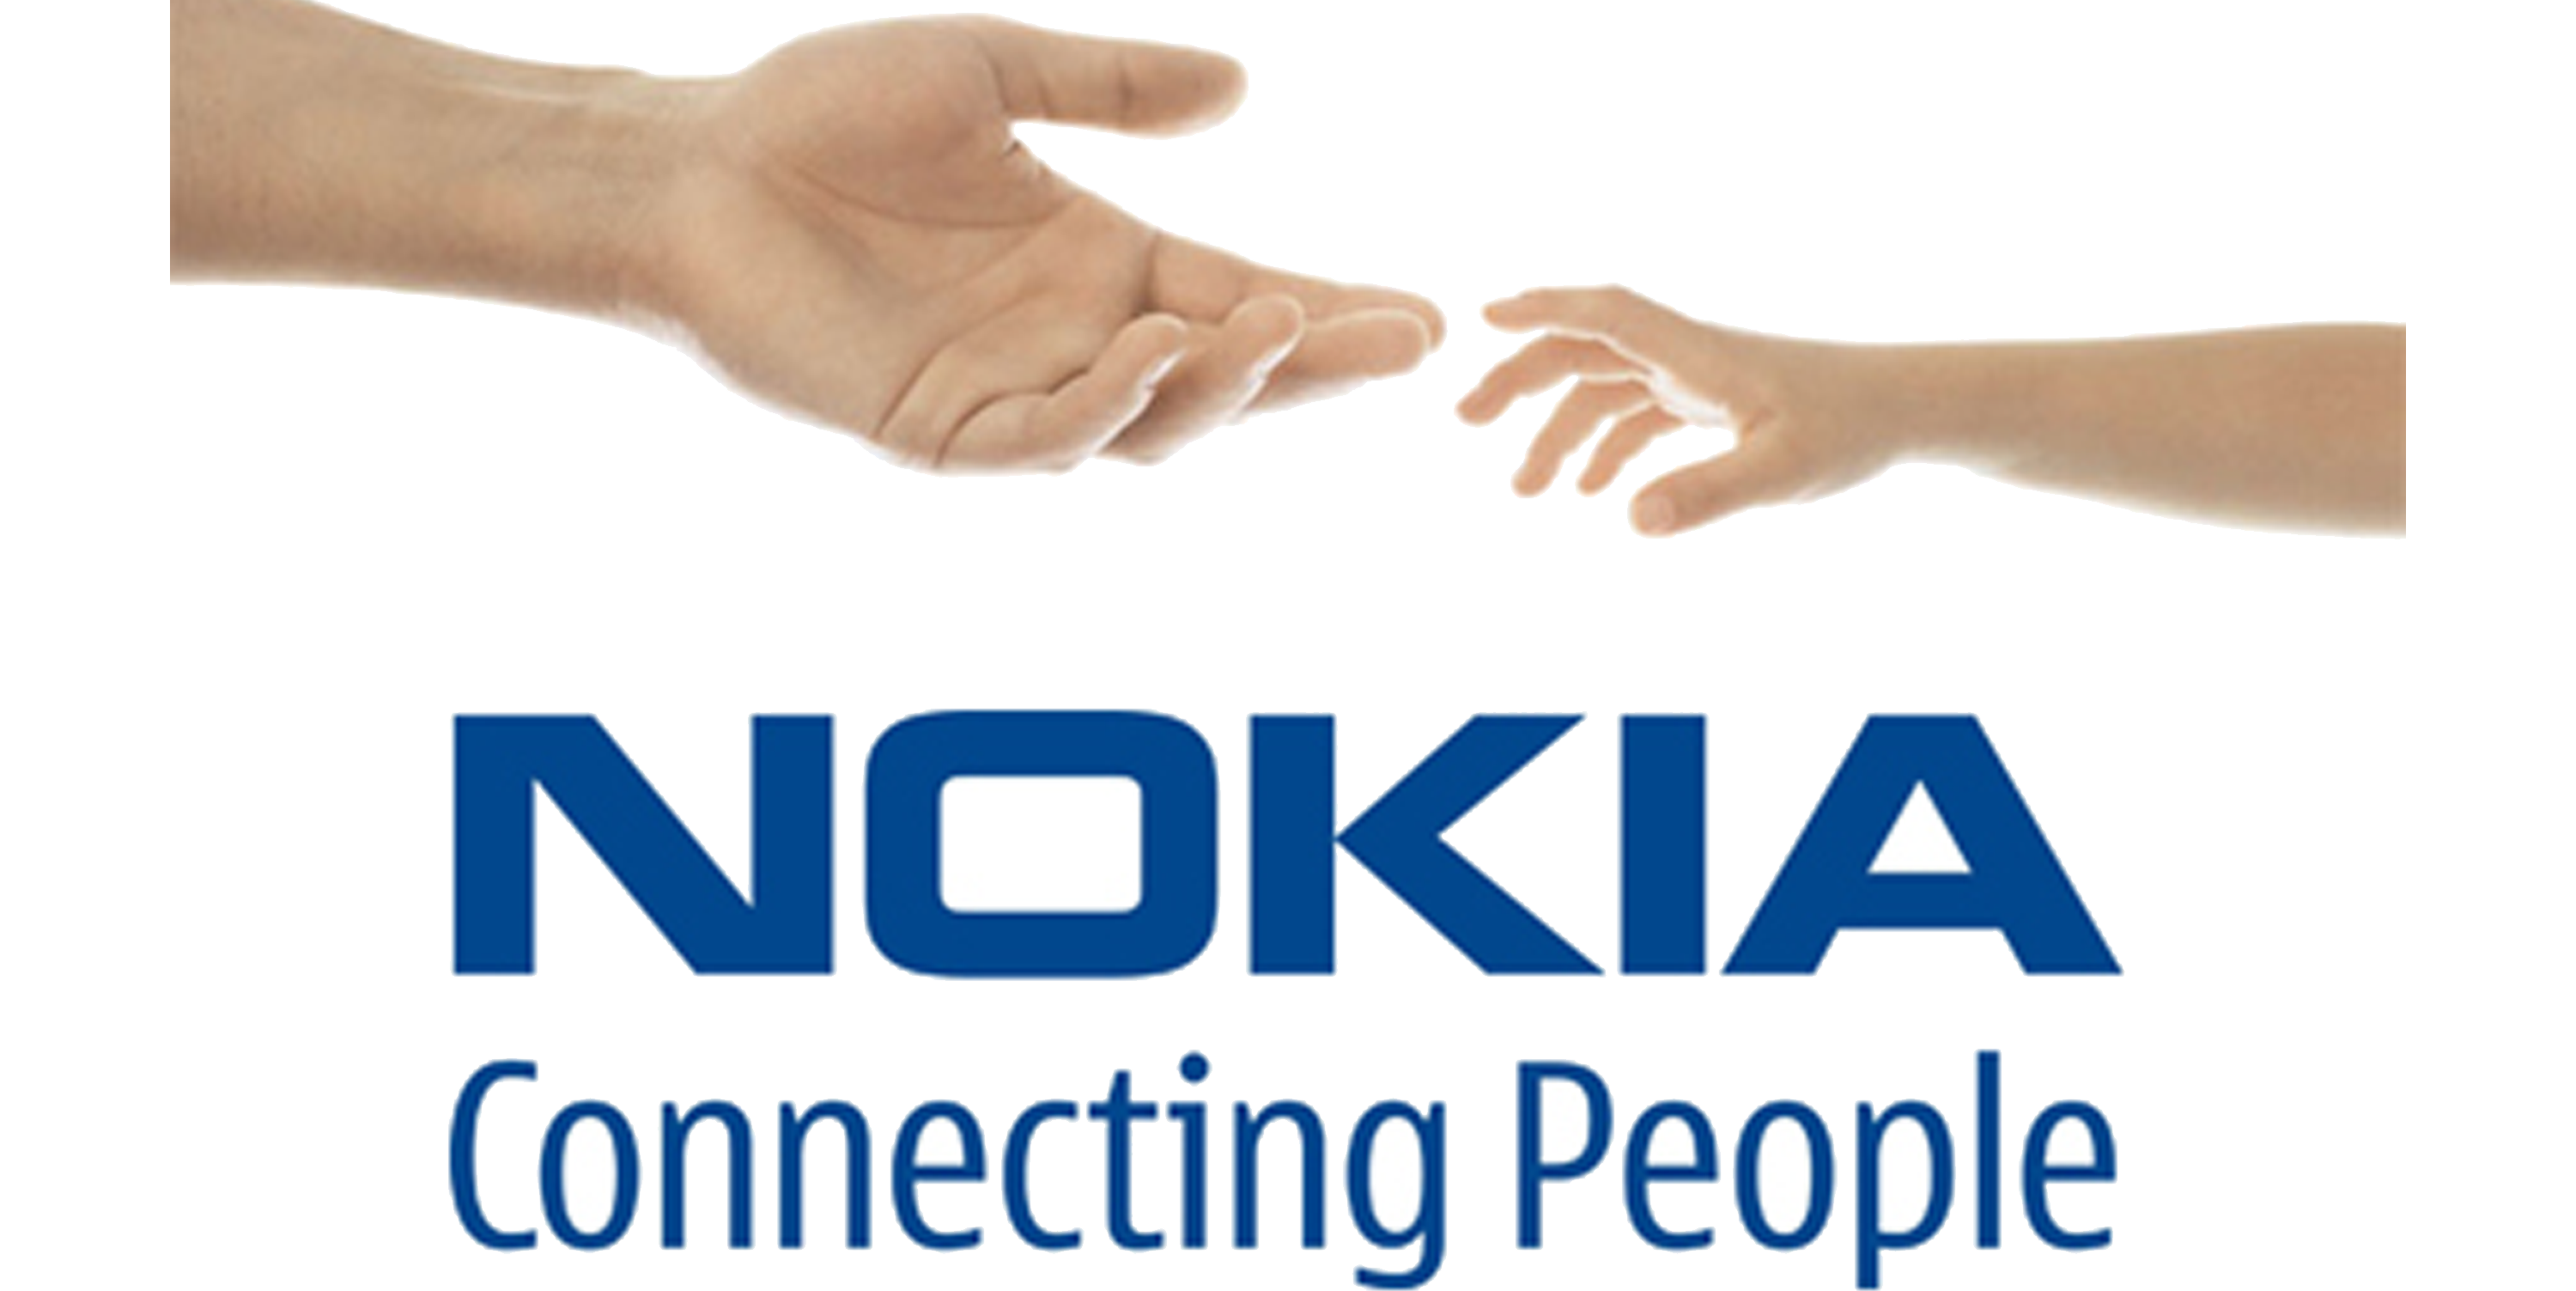 Nokia With Hands Connecting People Png 1490 Free